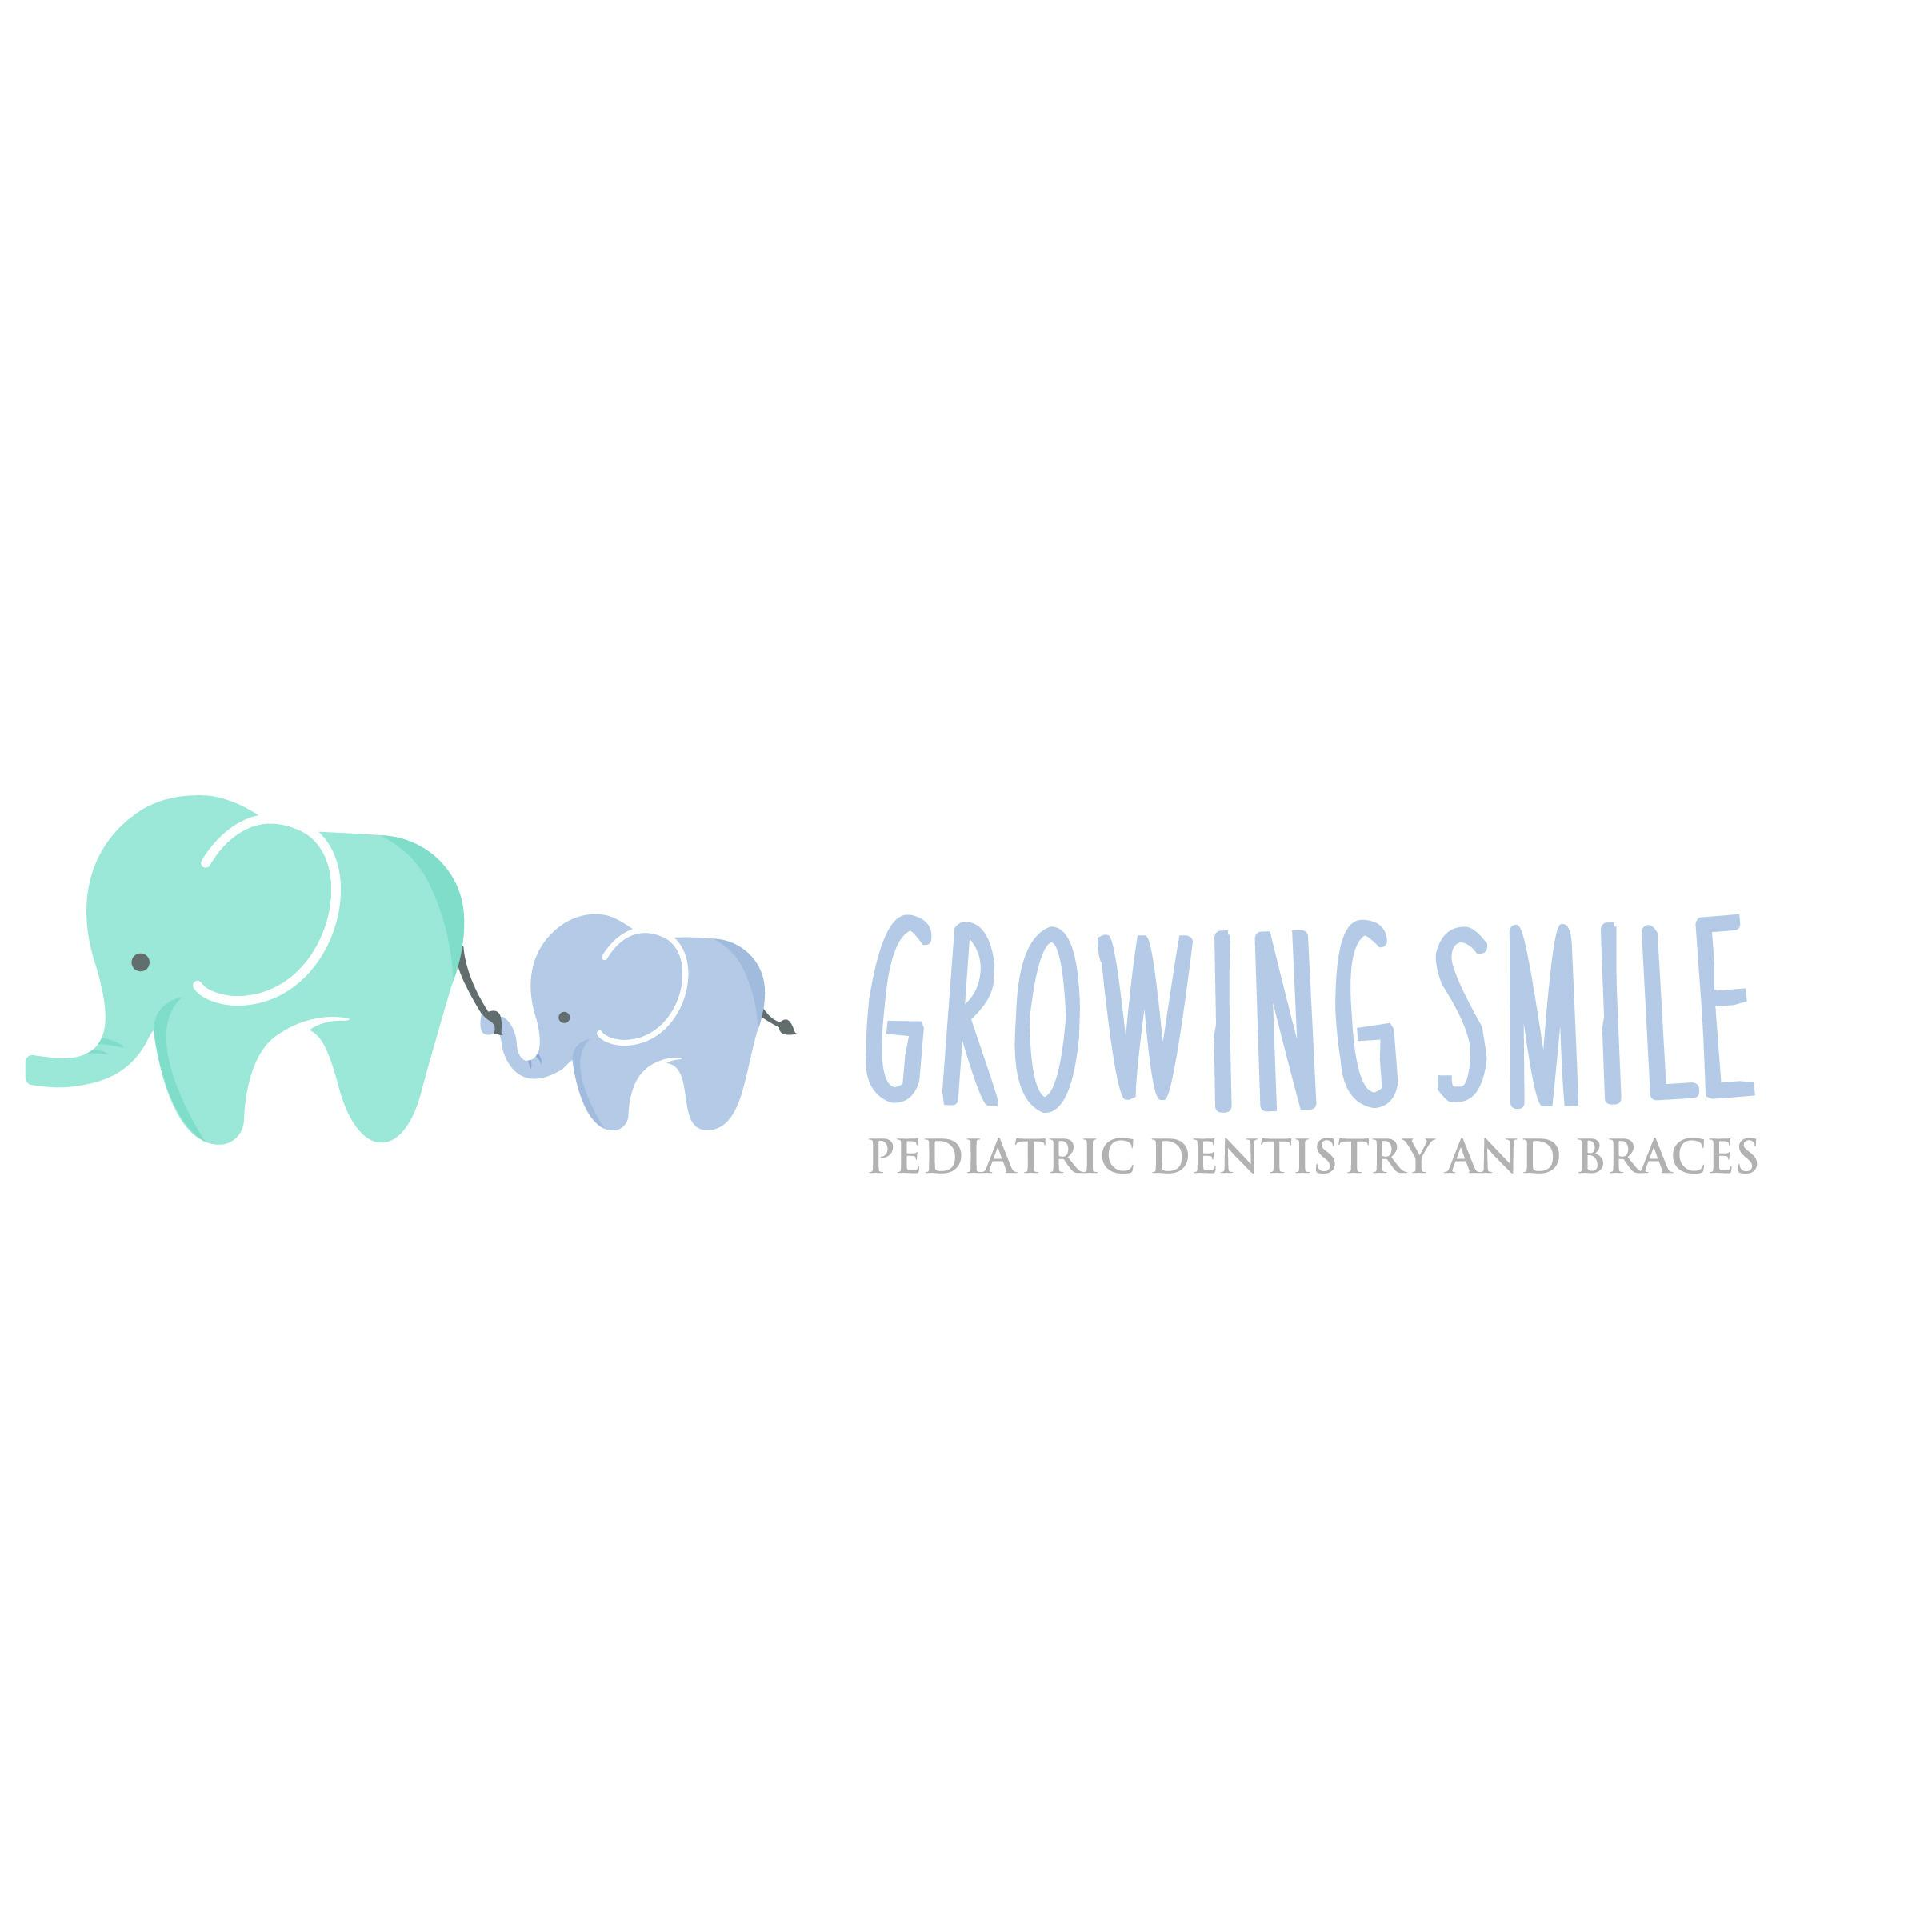 Growing Smile Pediatric Dentistry and Braces